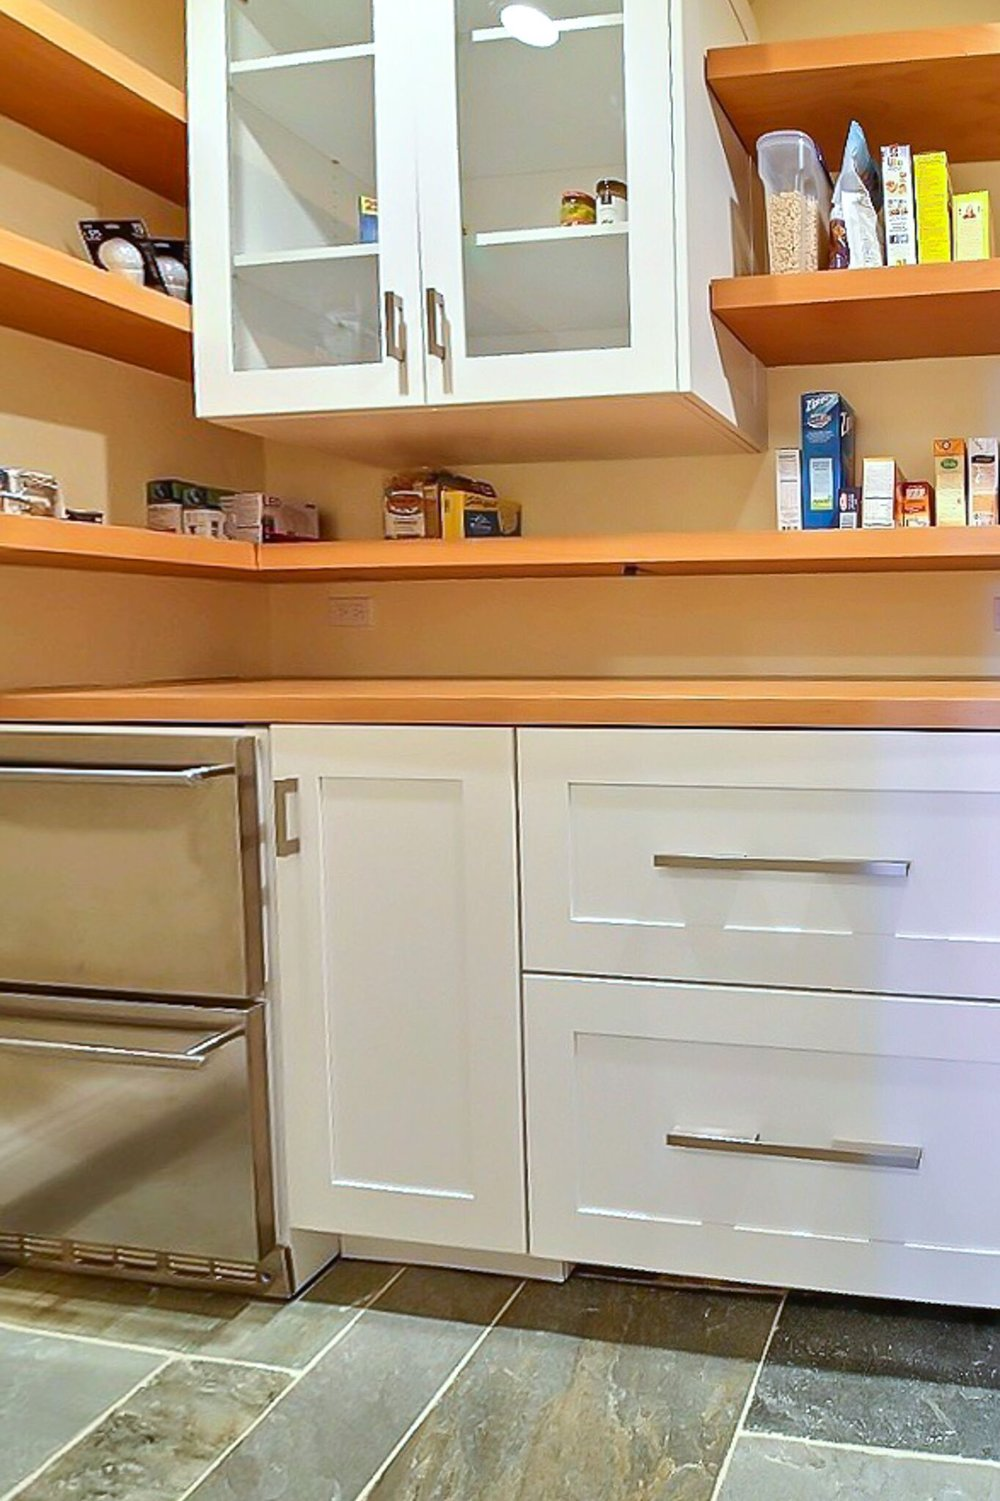 Stainless refrigerator drawers and freezer drawers with drawer panels